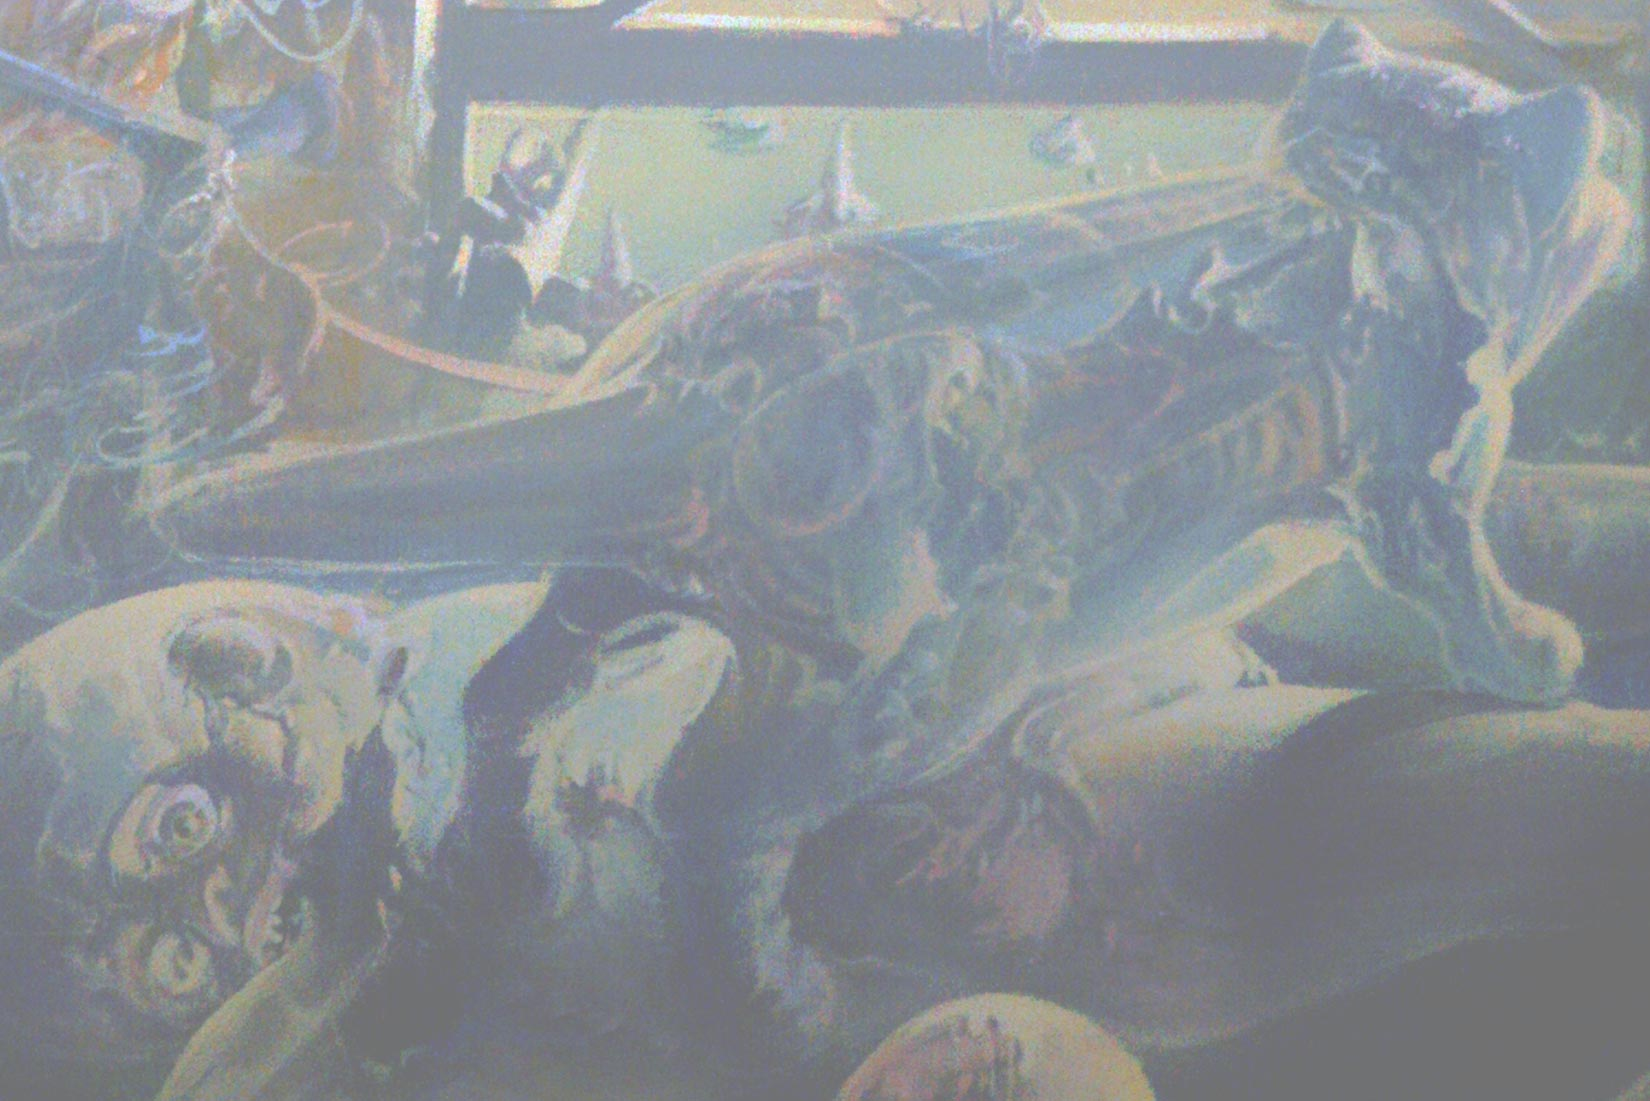 Dado's painting: The Studio, 1972 (detail)